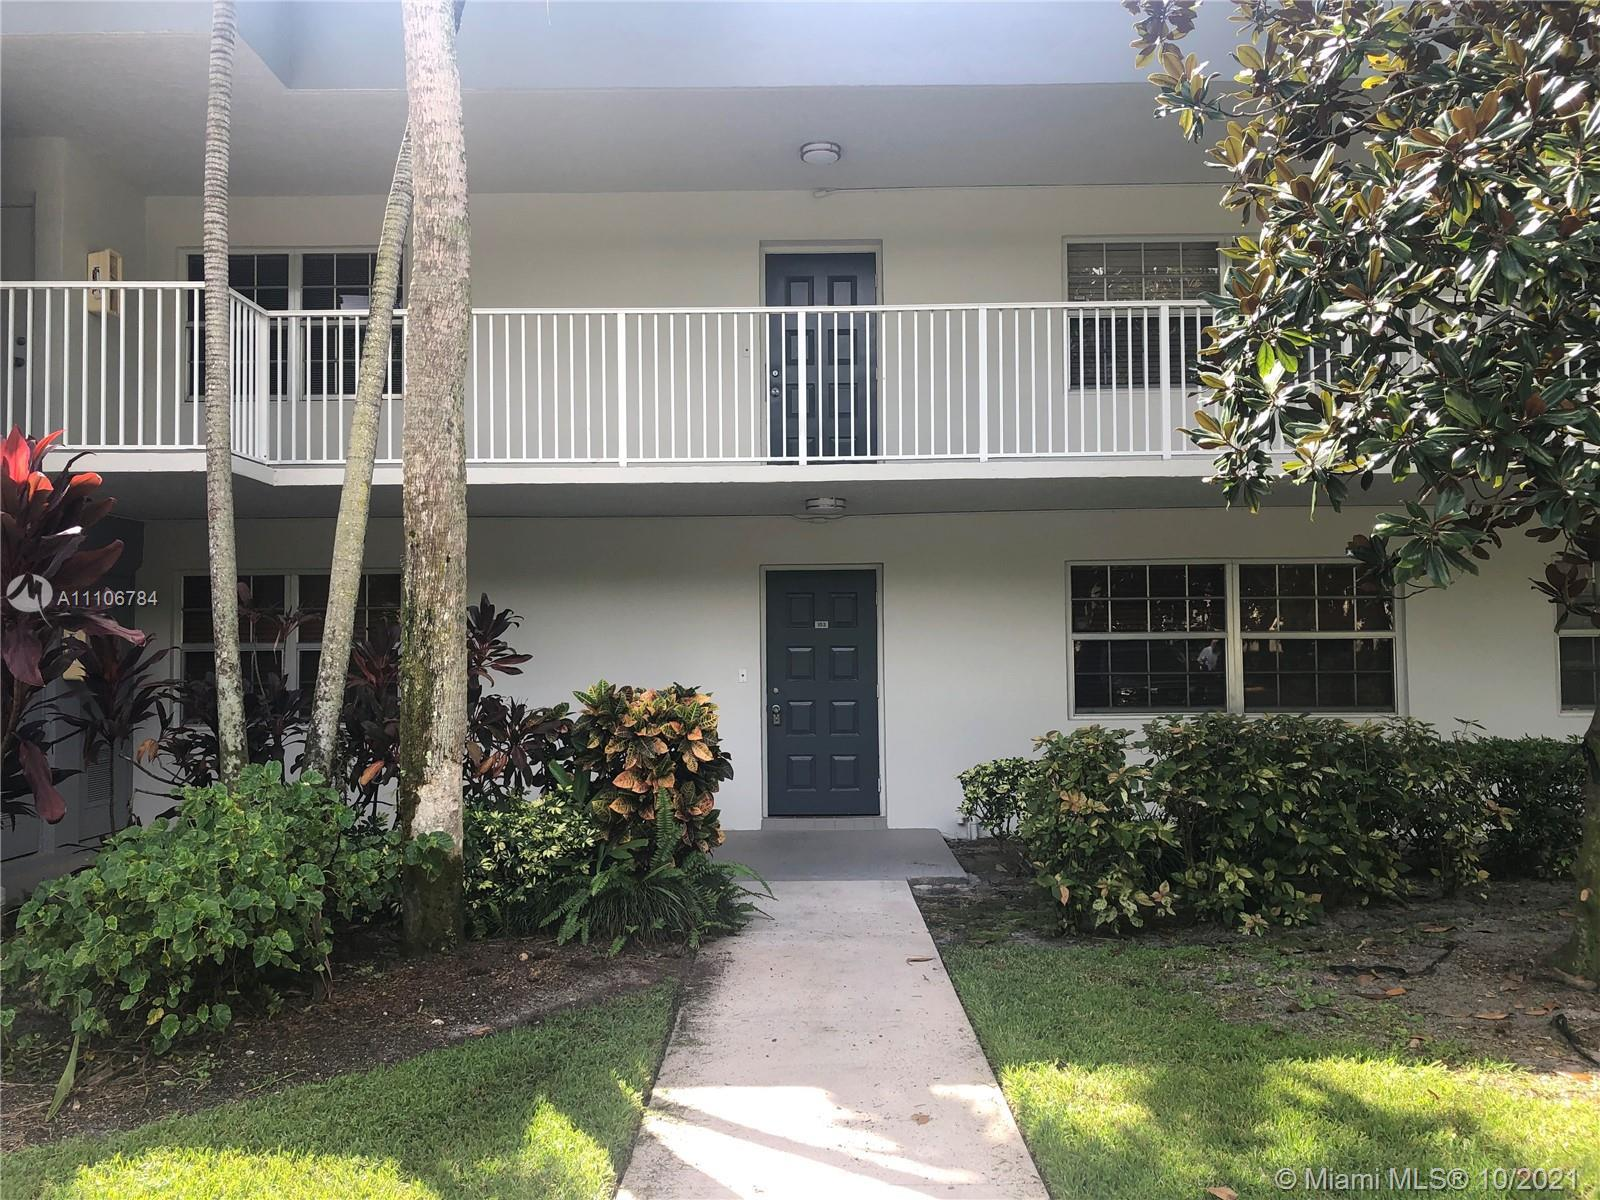 Highly desired area in Palm Aire. This 3 bedroom 3 bath unit ceramic flooring throughout living area